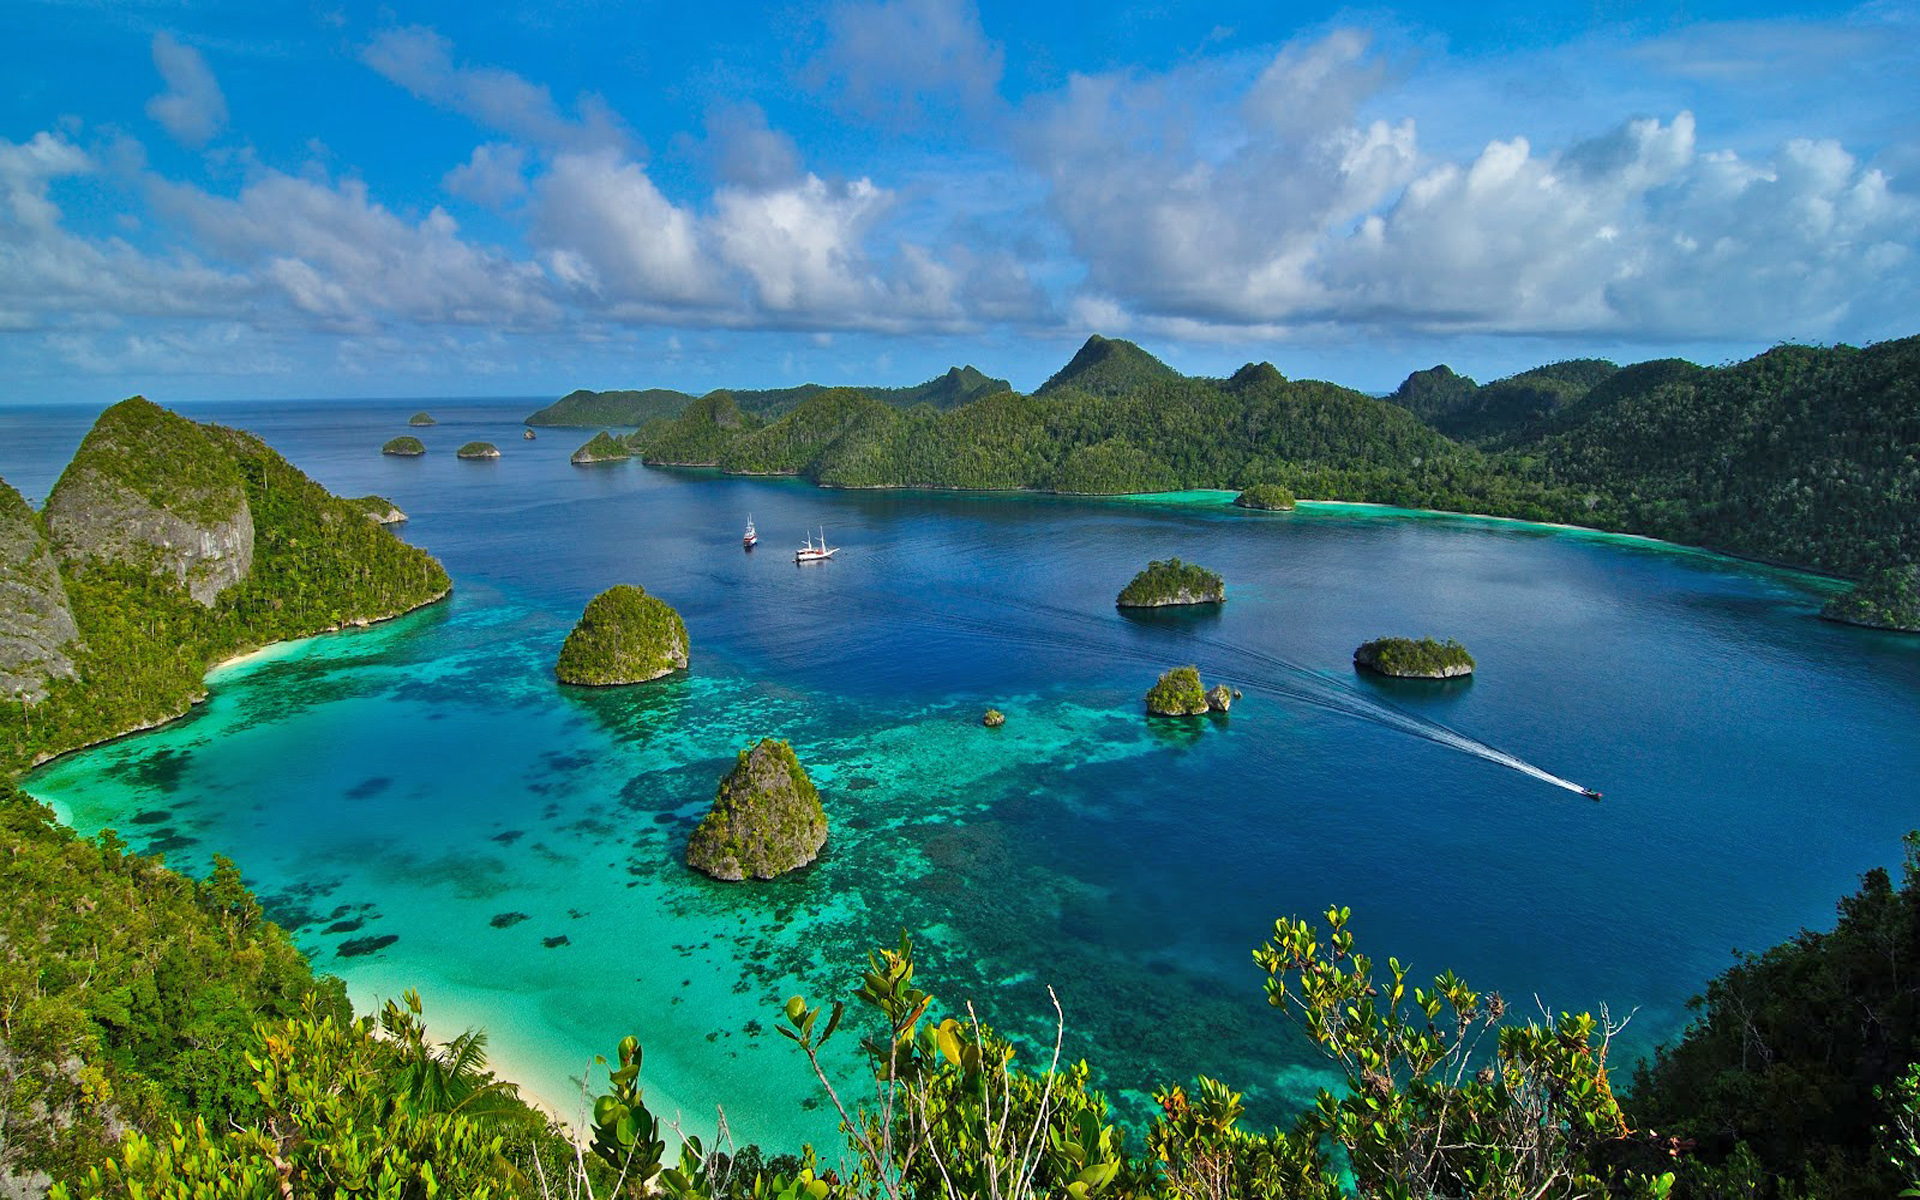 Raja Ampat Indonesia Lovely Ocean Bay Islands With Green